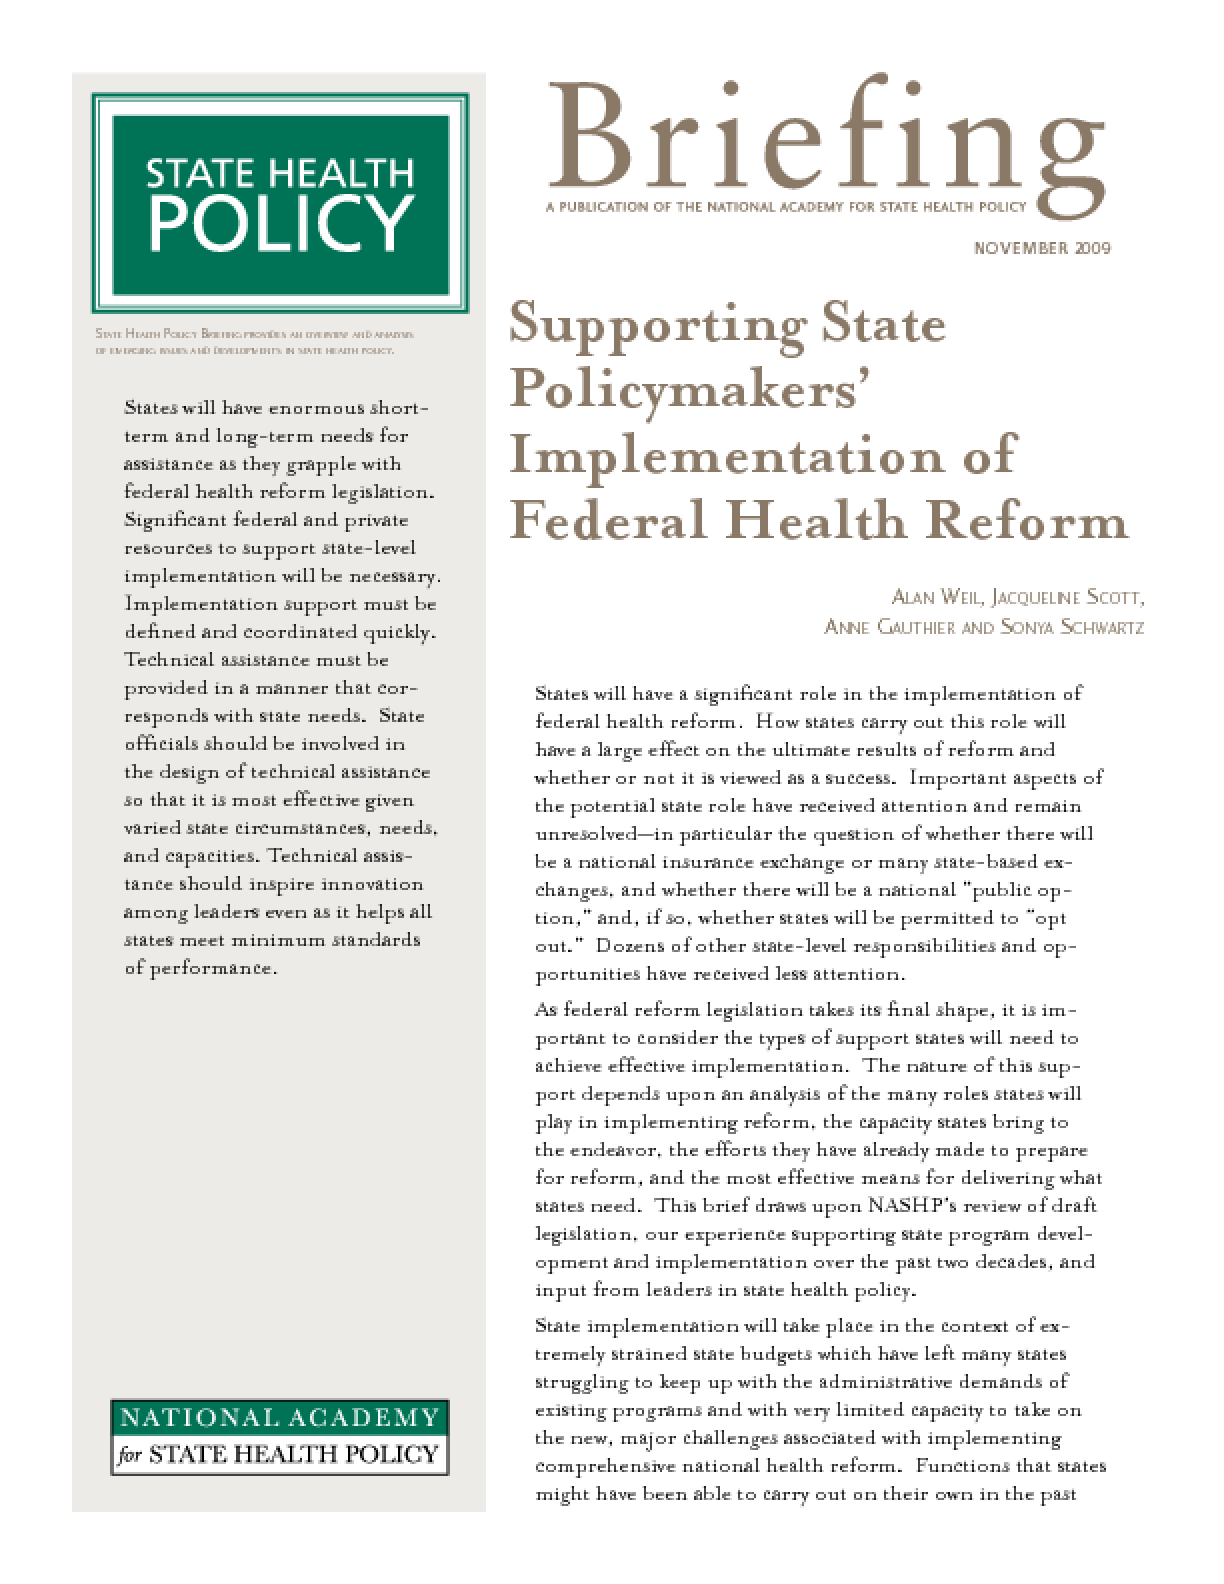 Supporting State Policymakers' Implementation of Federal Health Reform